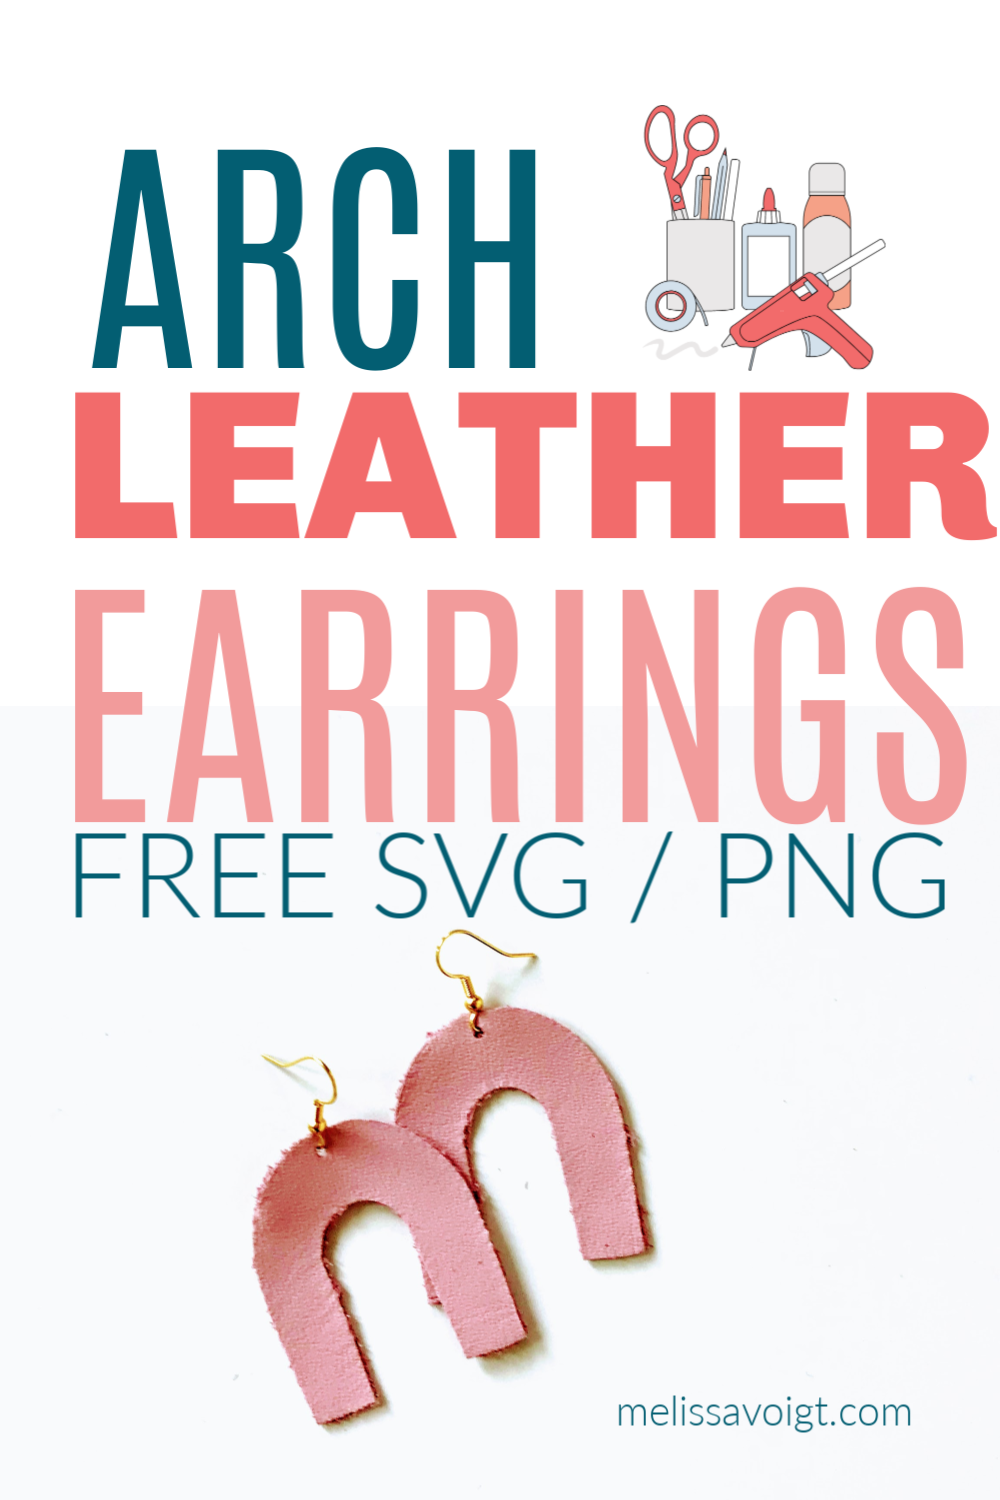 Arch earring 4.png